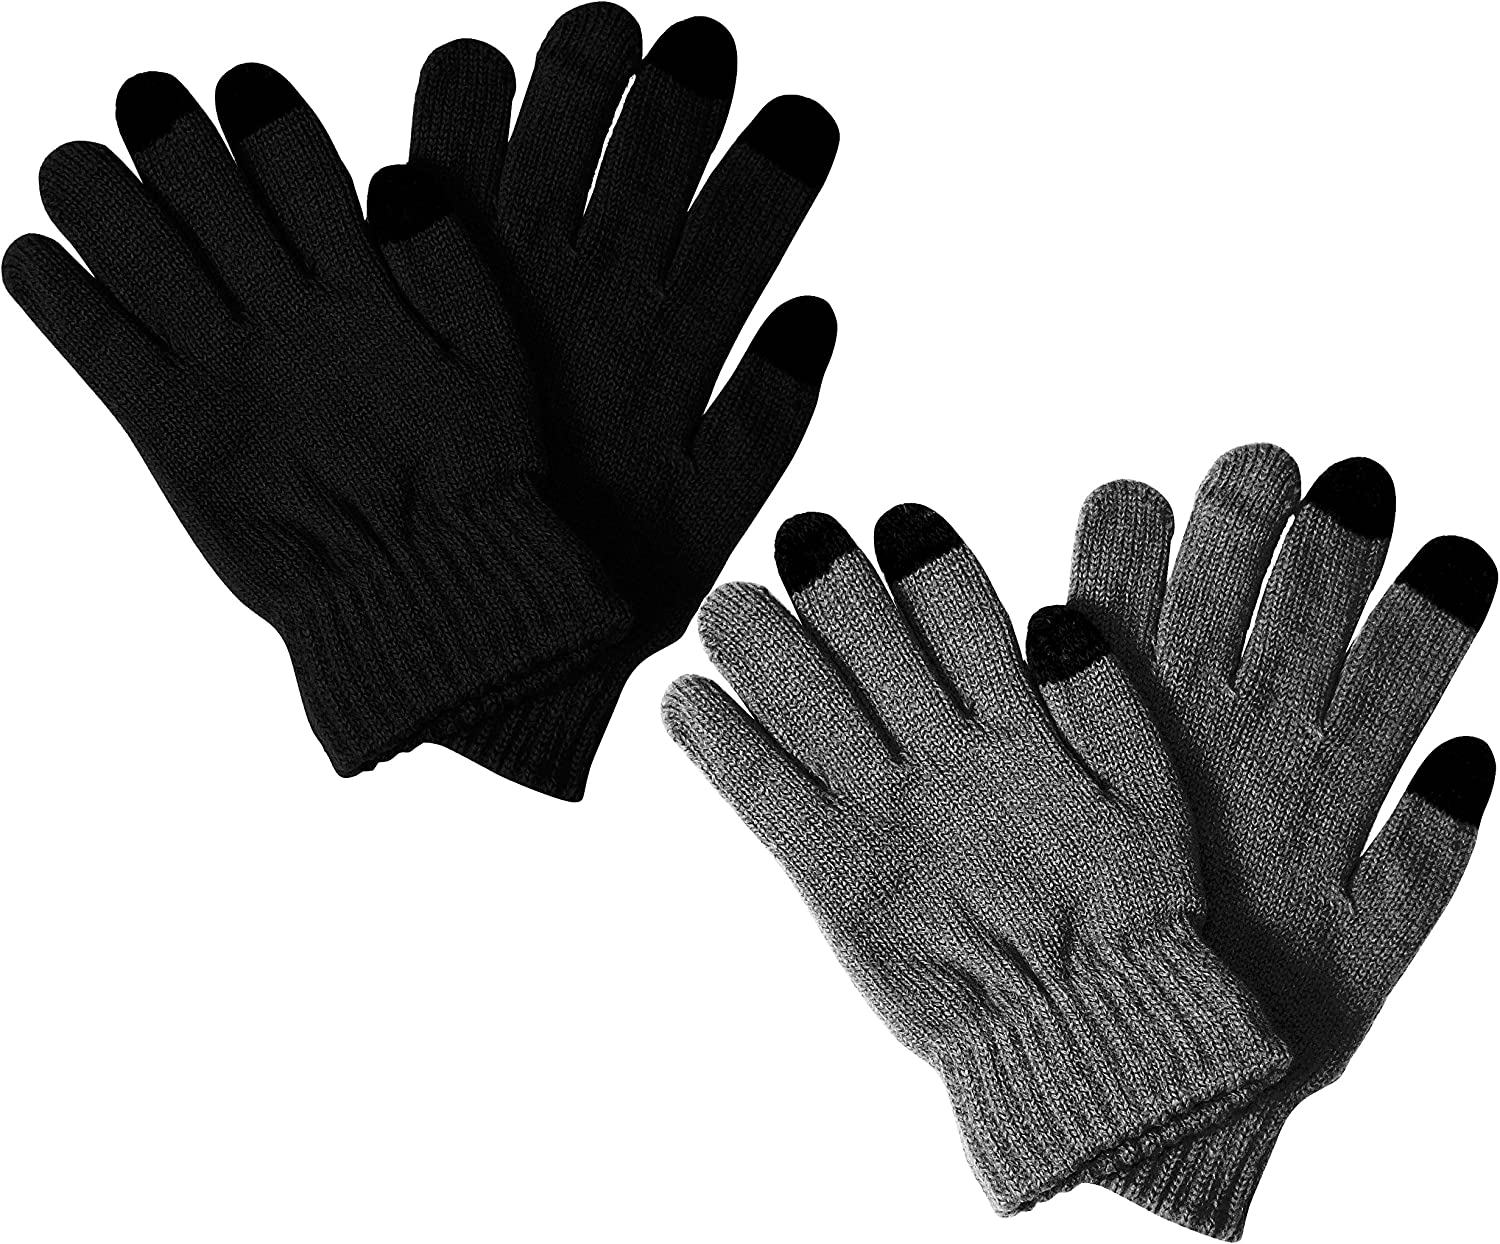 Peach Couture Unisex Warm Knitted Double Layered Touch Screen Texting Gloves